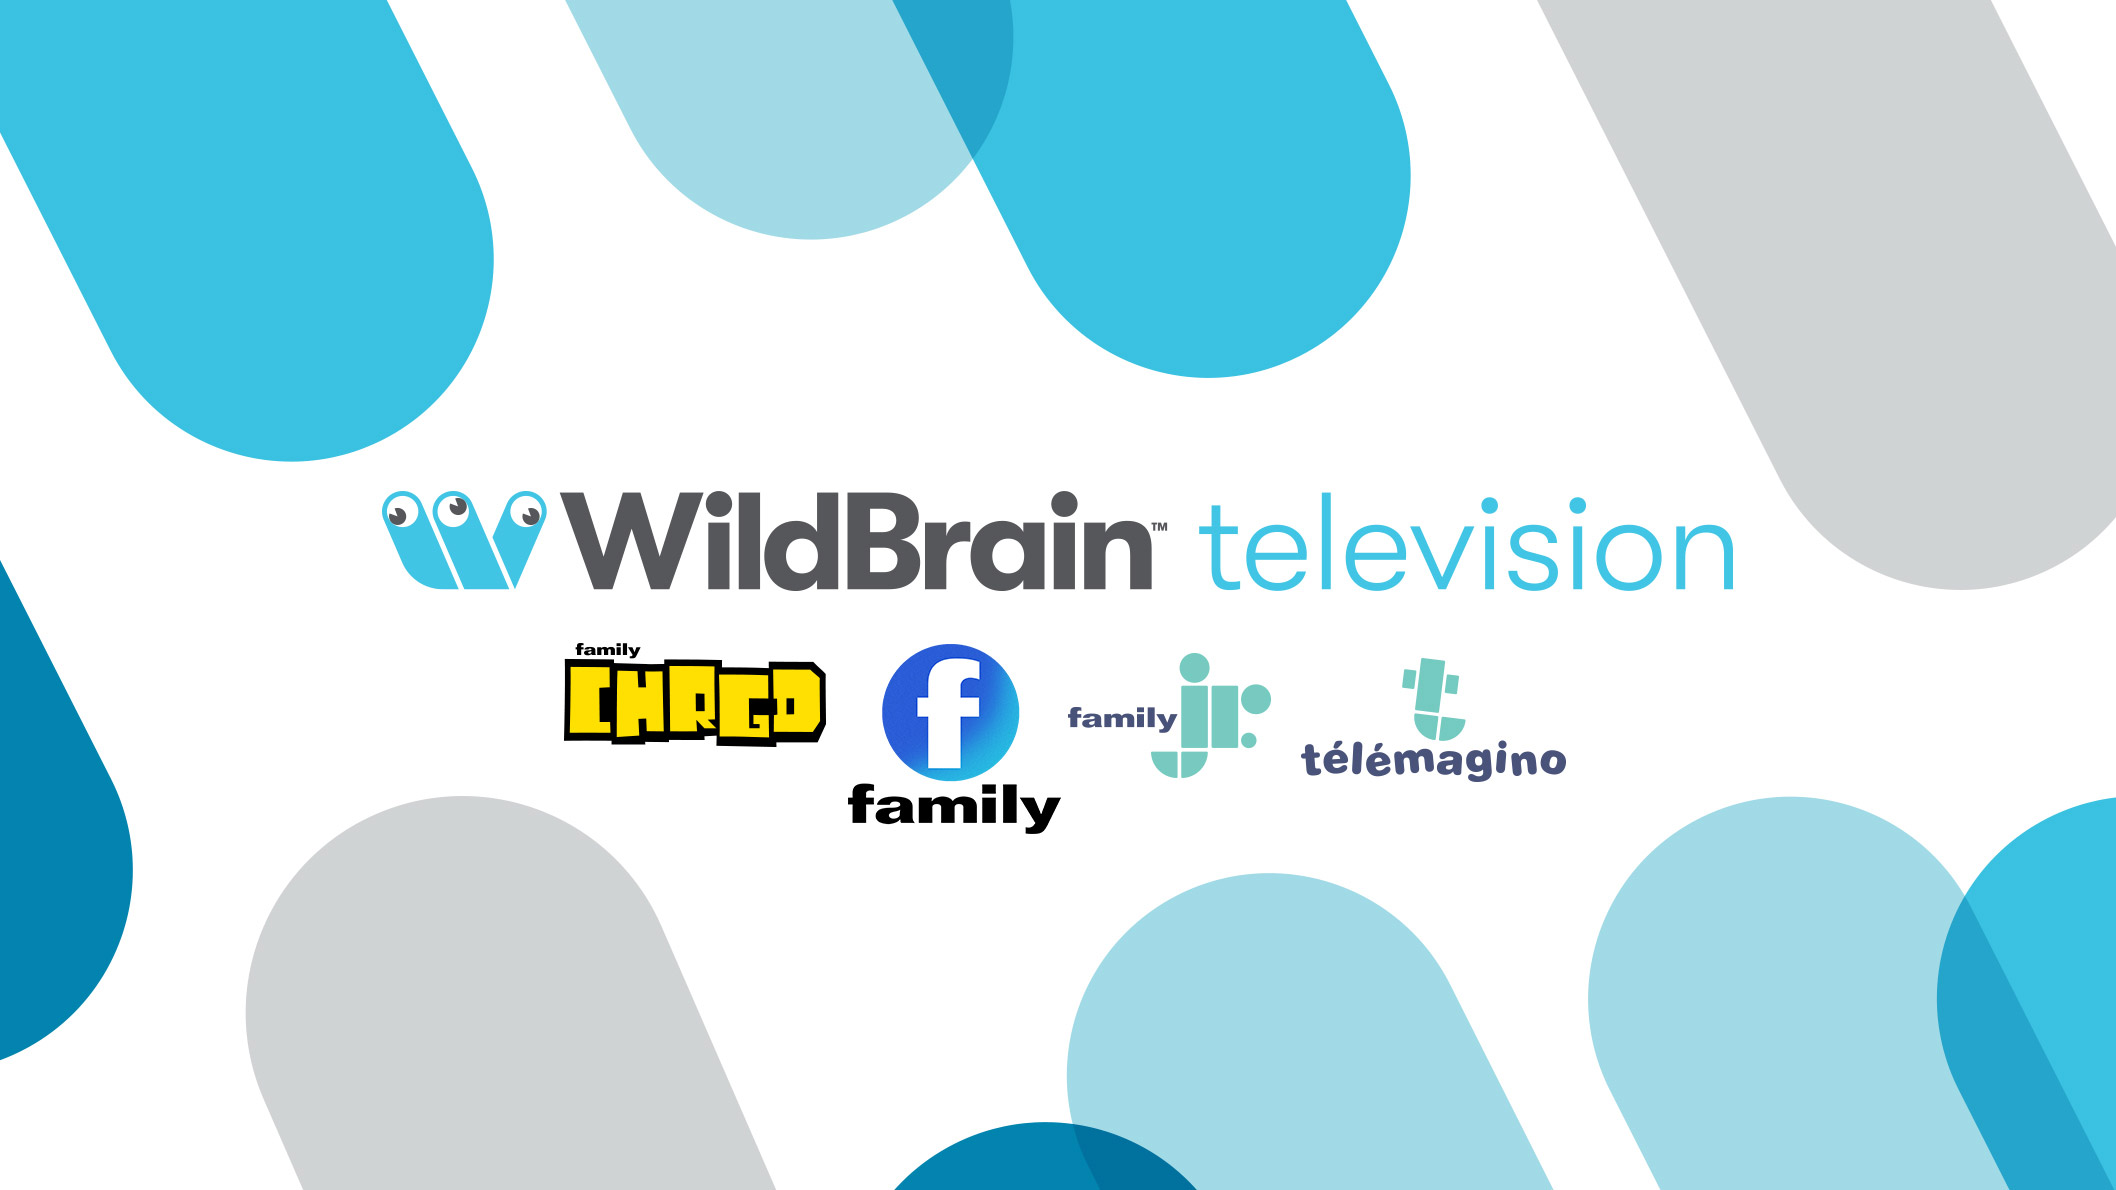 A white background with the WildBrain television logo in the middle and four other logos underneath it. There are dark blue, light blue and grey shapes sticking out from the corners of the image.